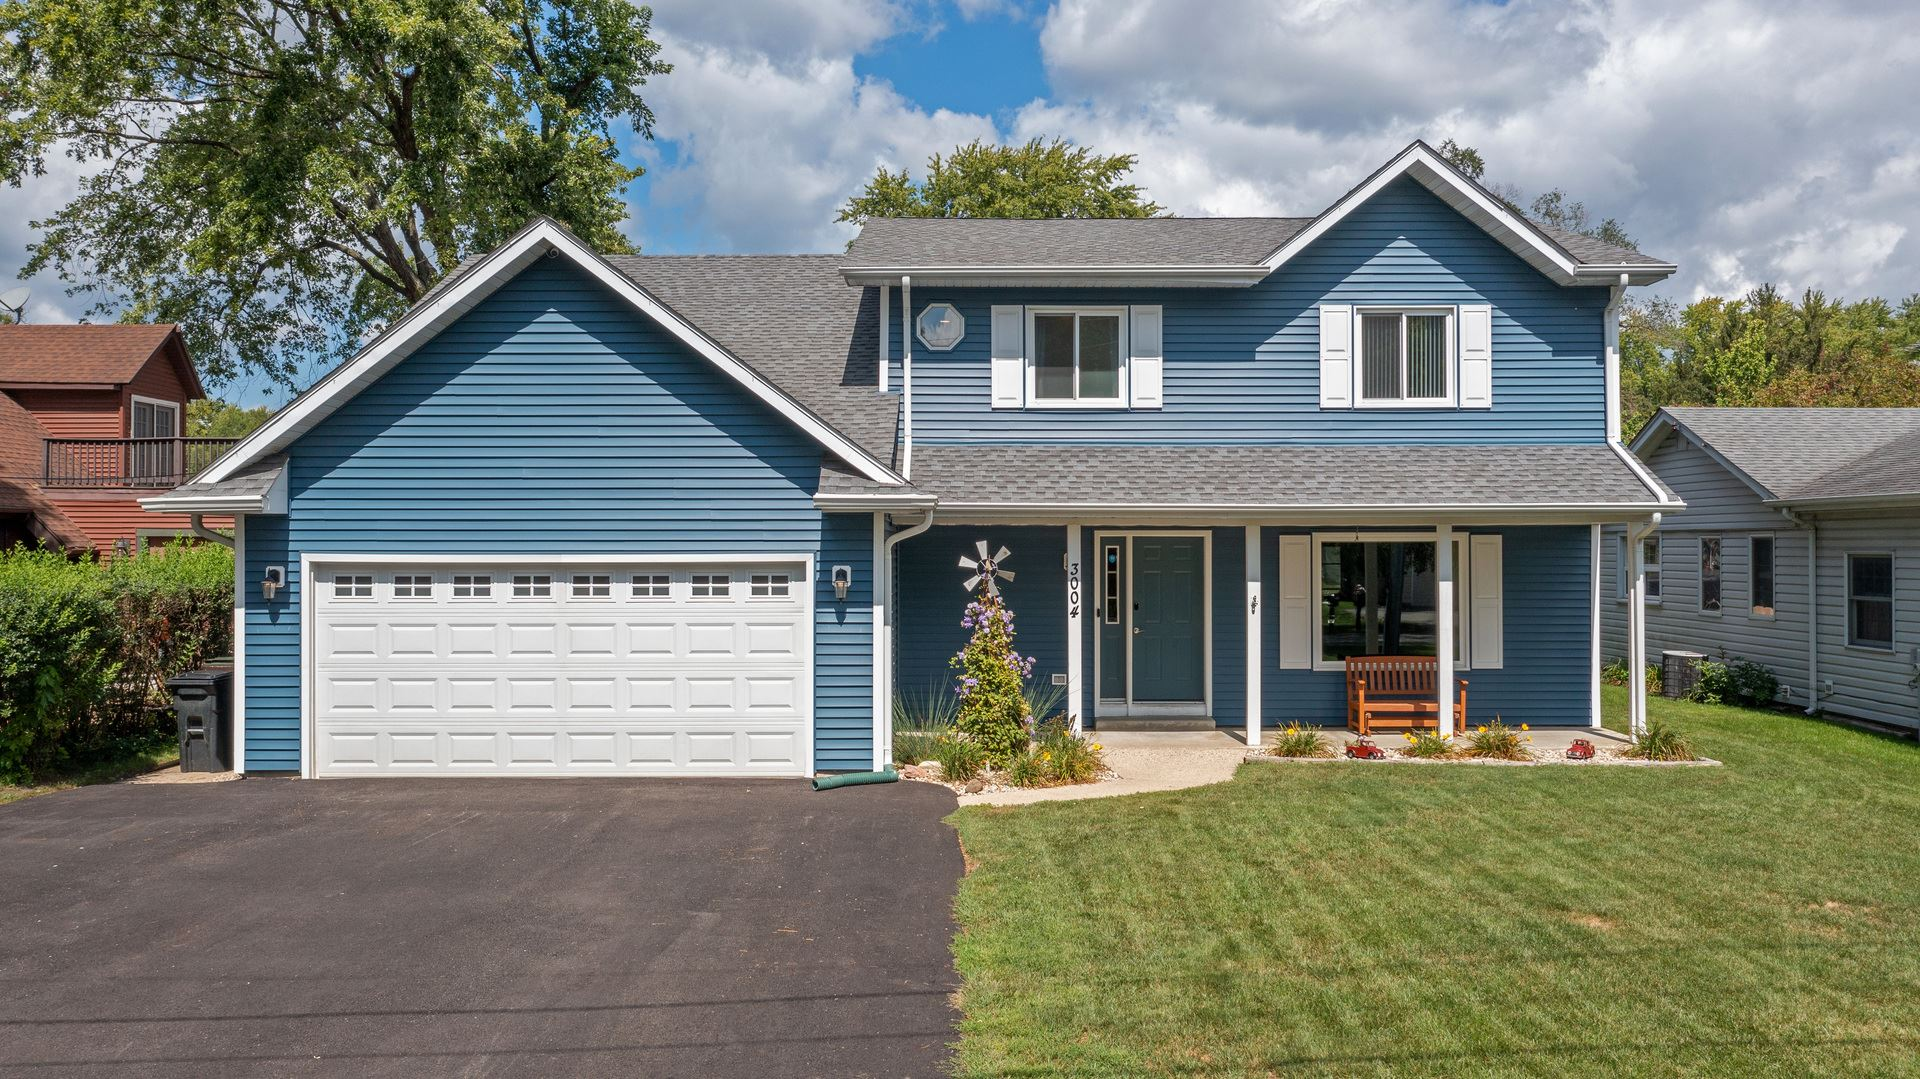 3004 Miller Drive, McHenry, IL 60050 - #: 11205243